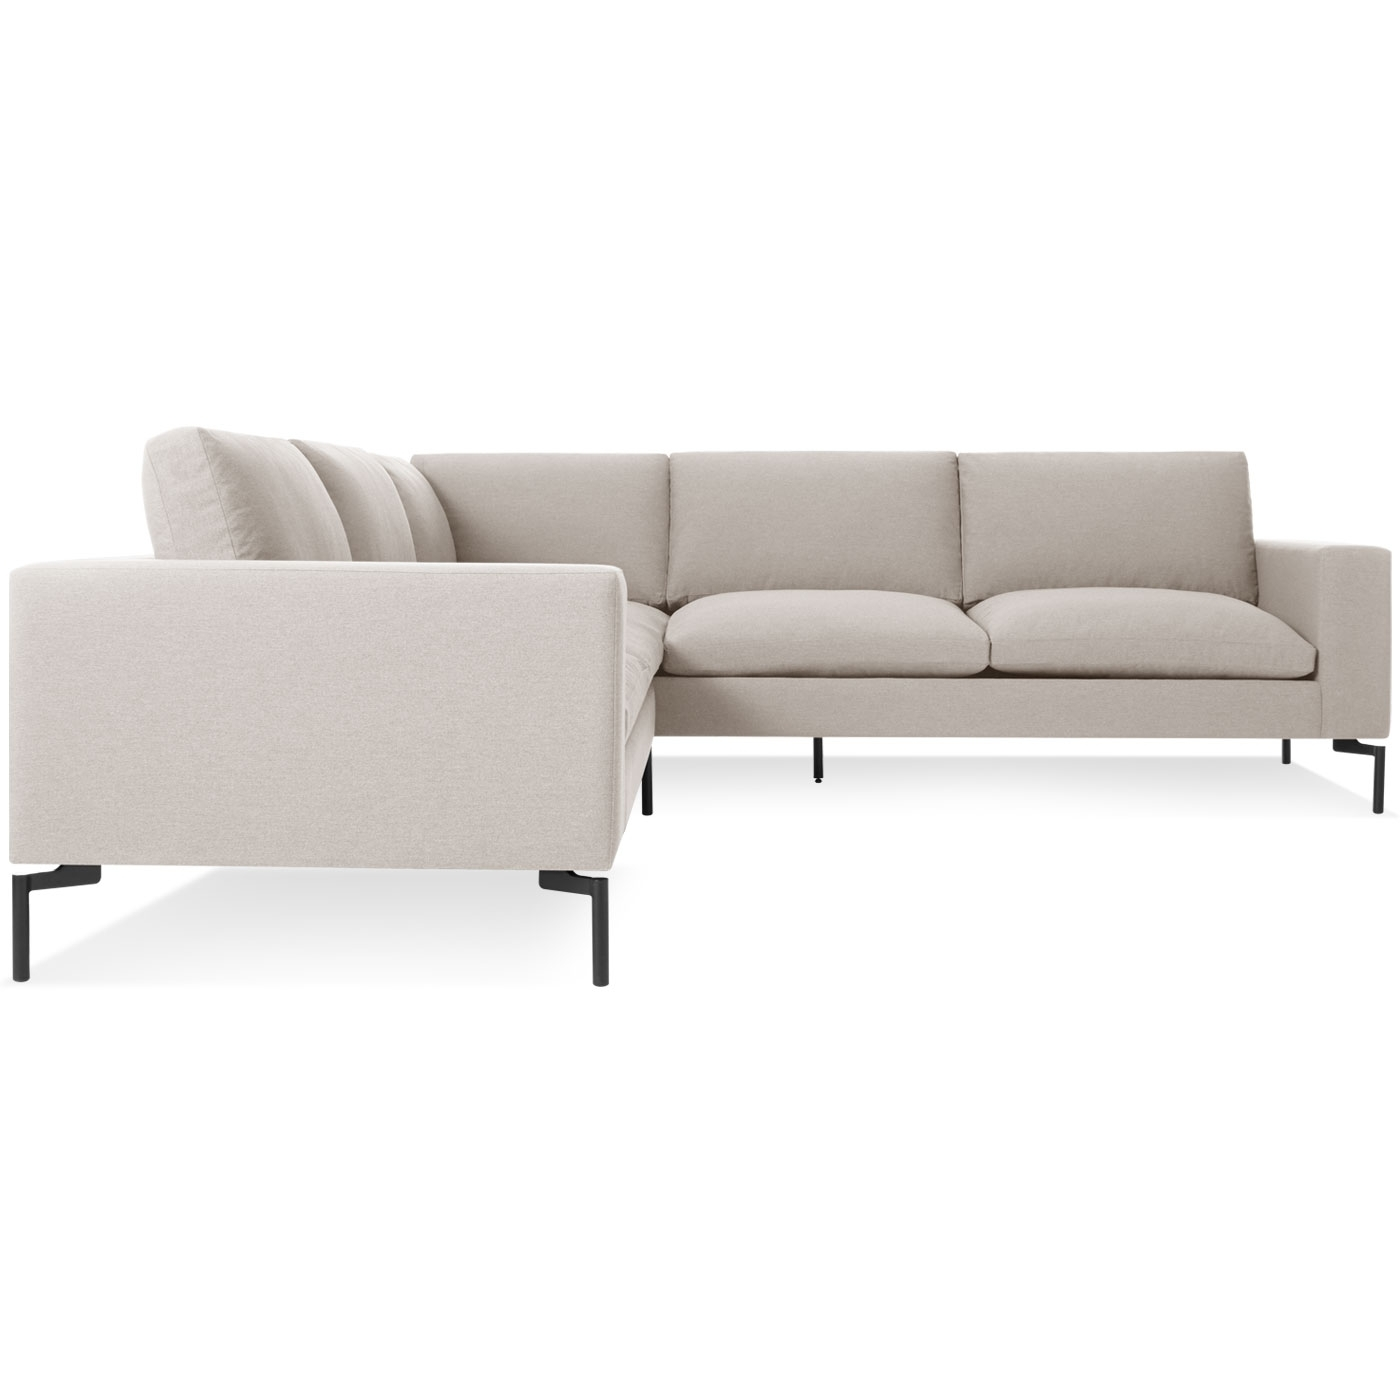 Widely Used New Standard Small Sectional Sofa – Modern Sofas (View 14 of 15)